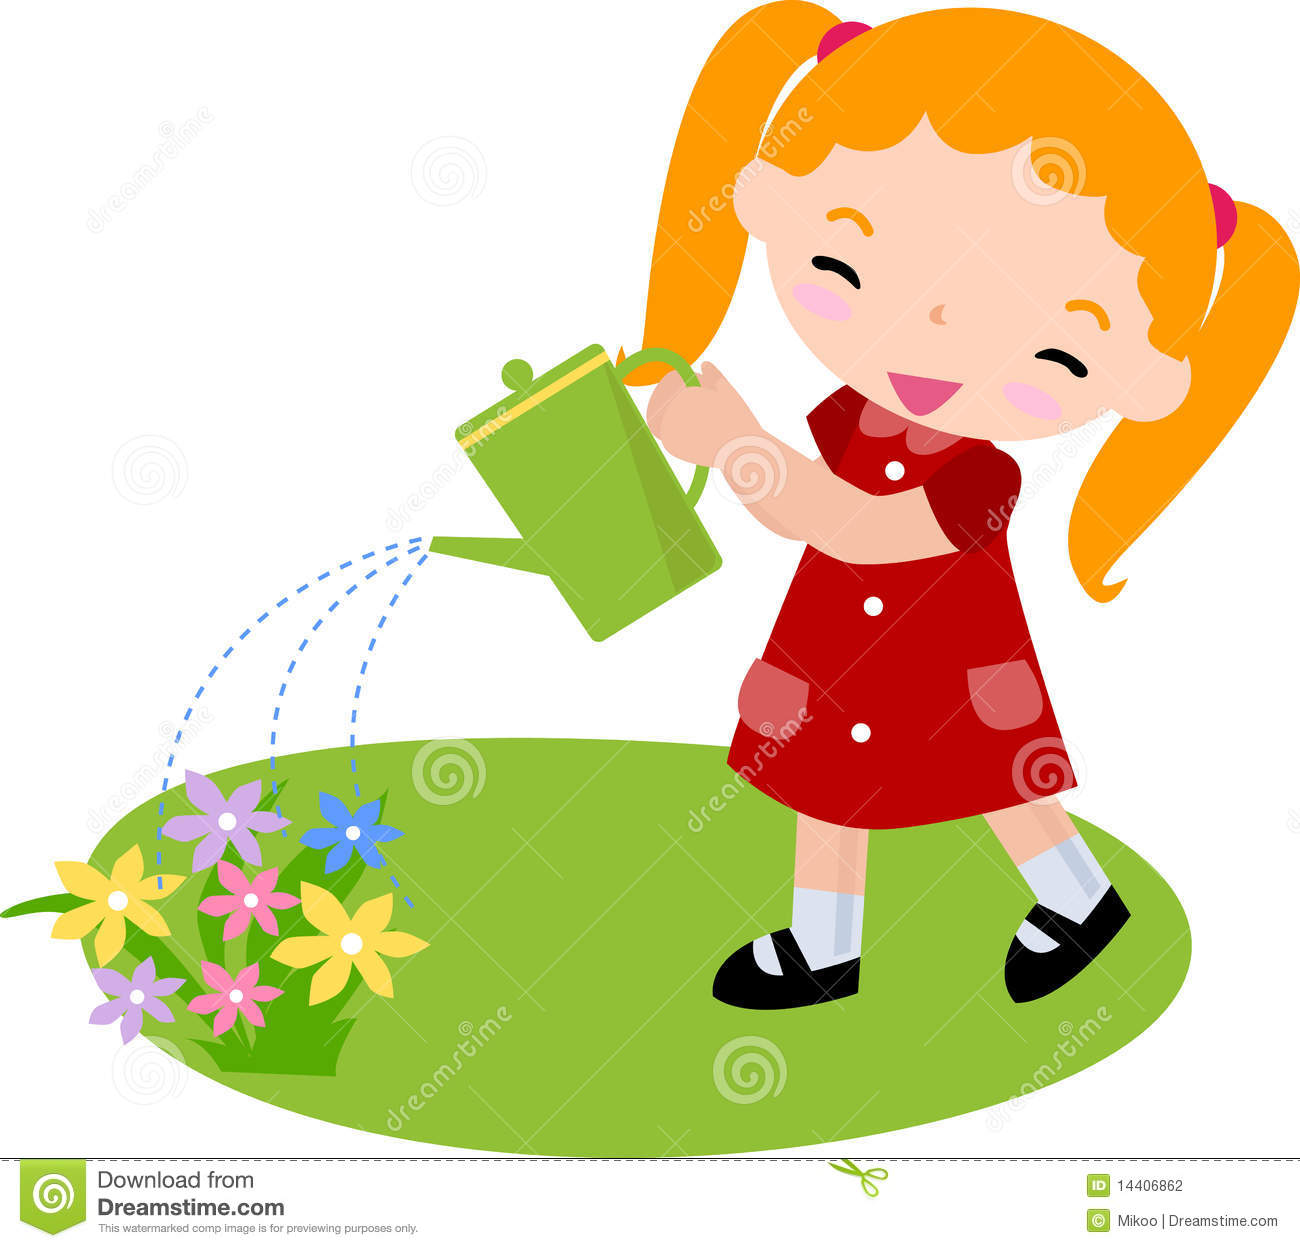 Watering Can clipart kid plant Boy Watering collection plants clipart